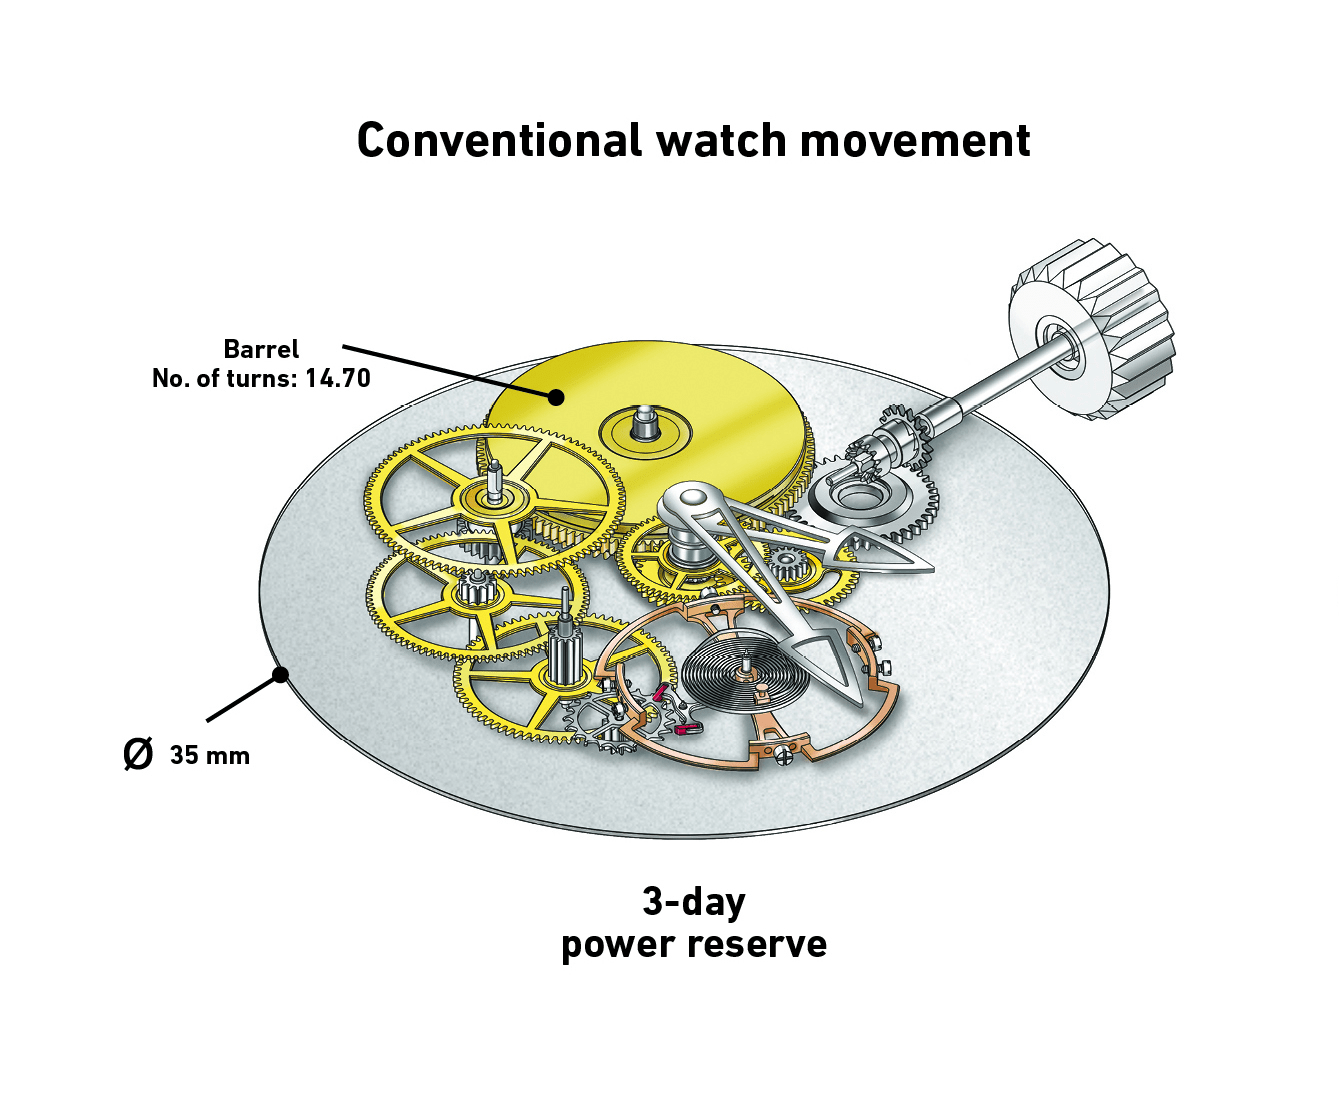 watch movement diagram parallel wiring introducing the greubel forsey mechanical nano project a 180 day conventional